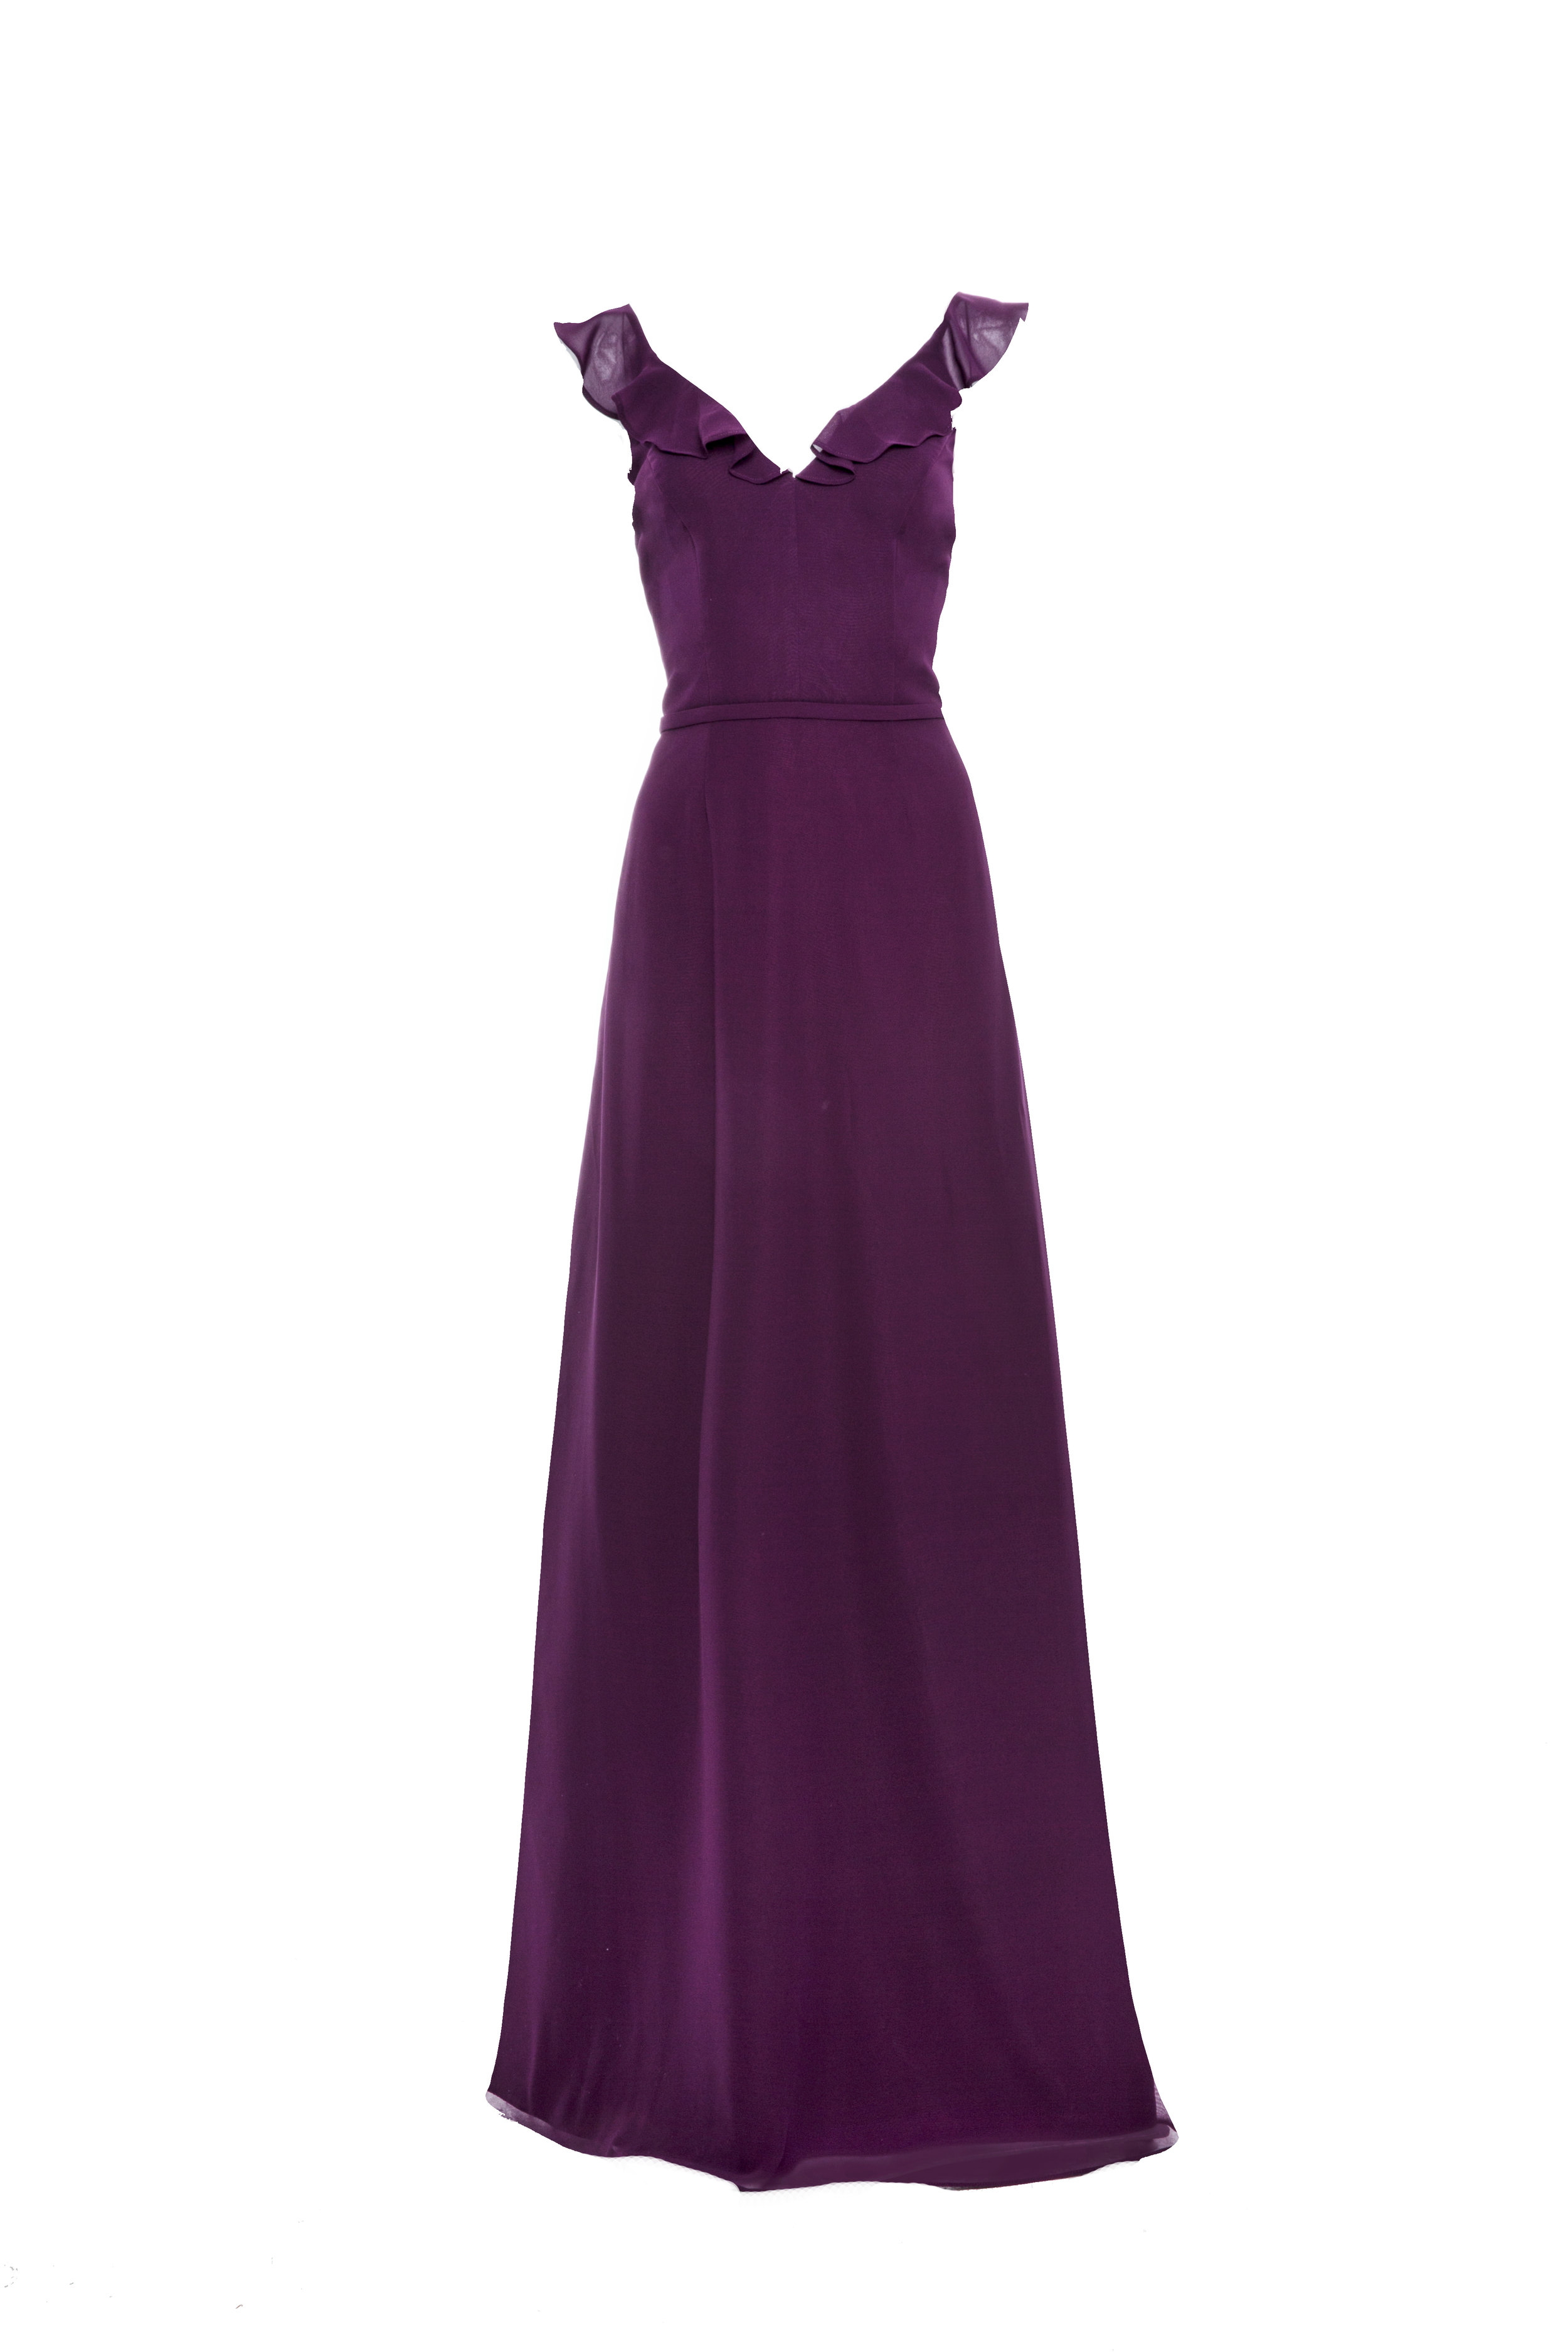 Monique Lhuillier 450426 Plum Chiffon